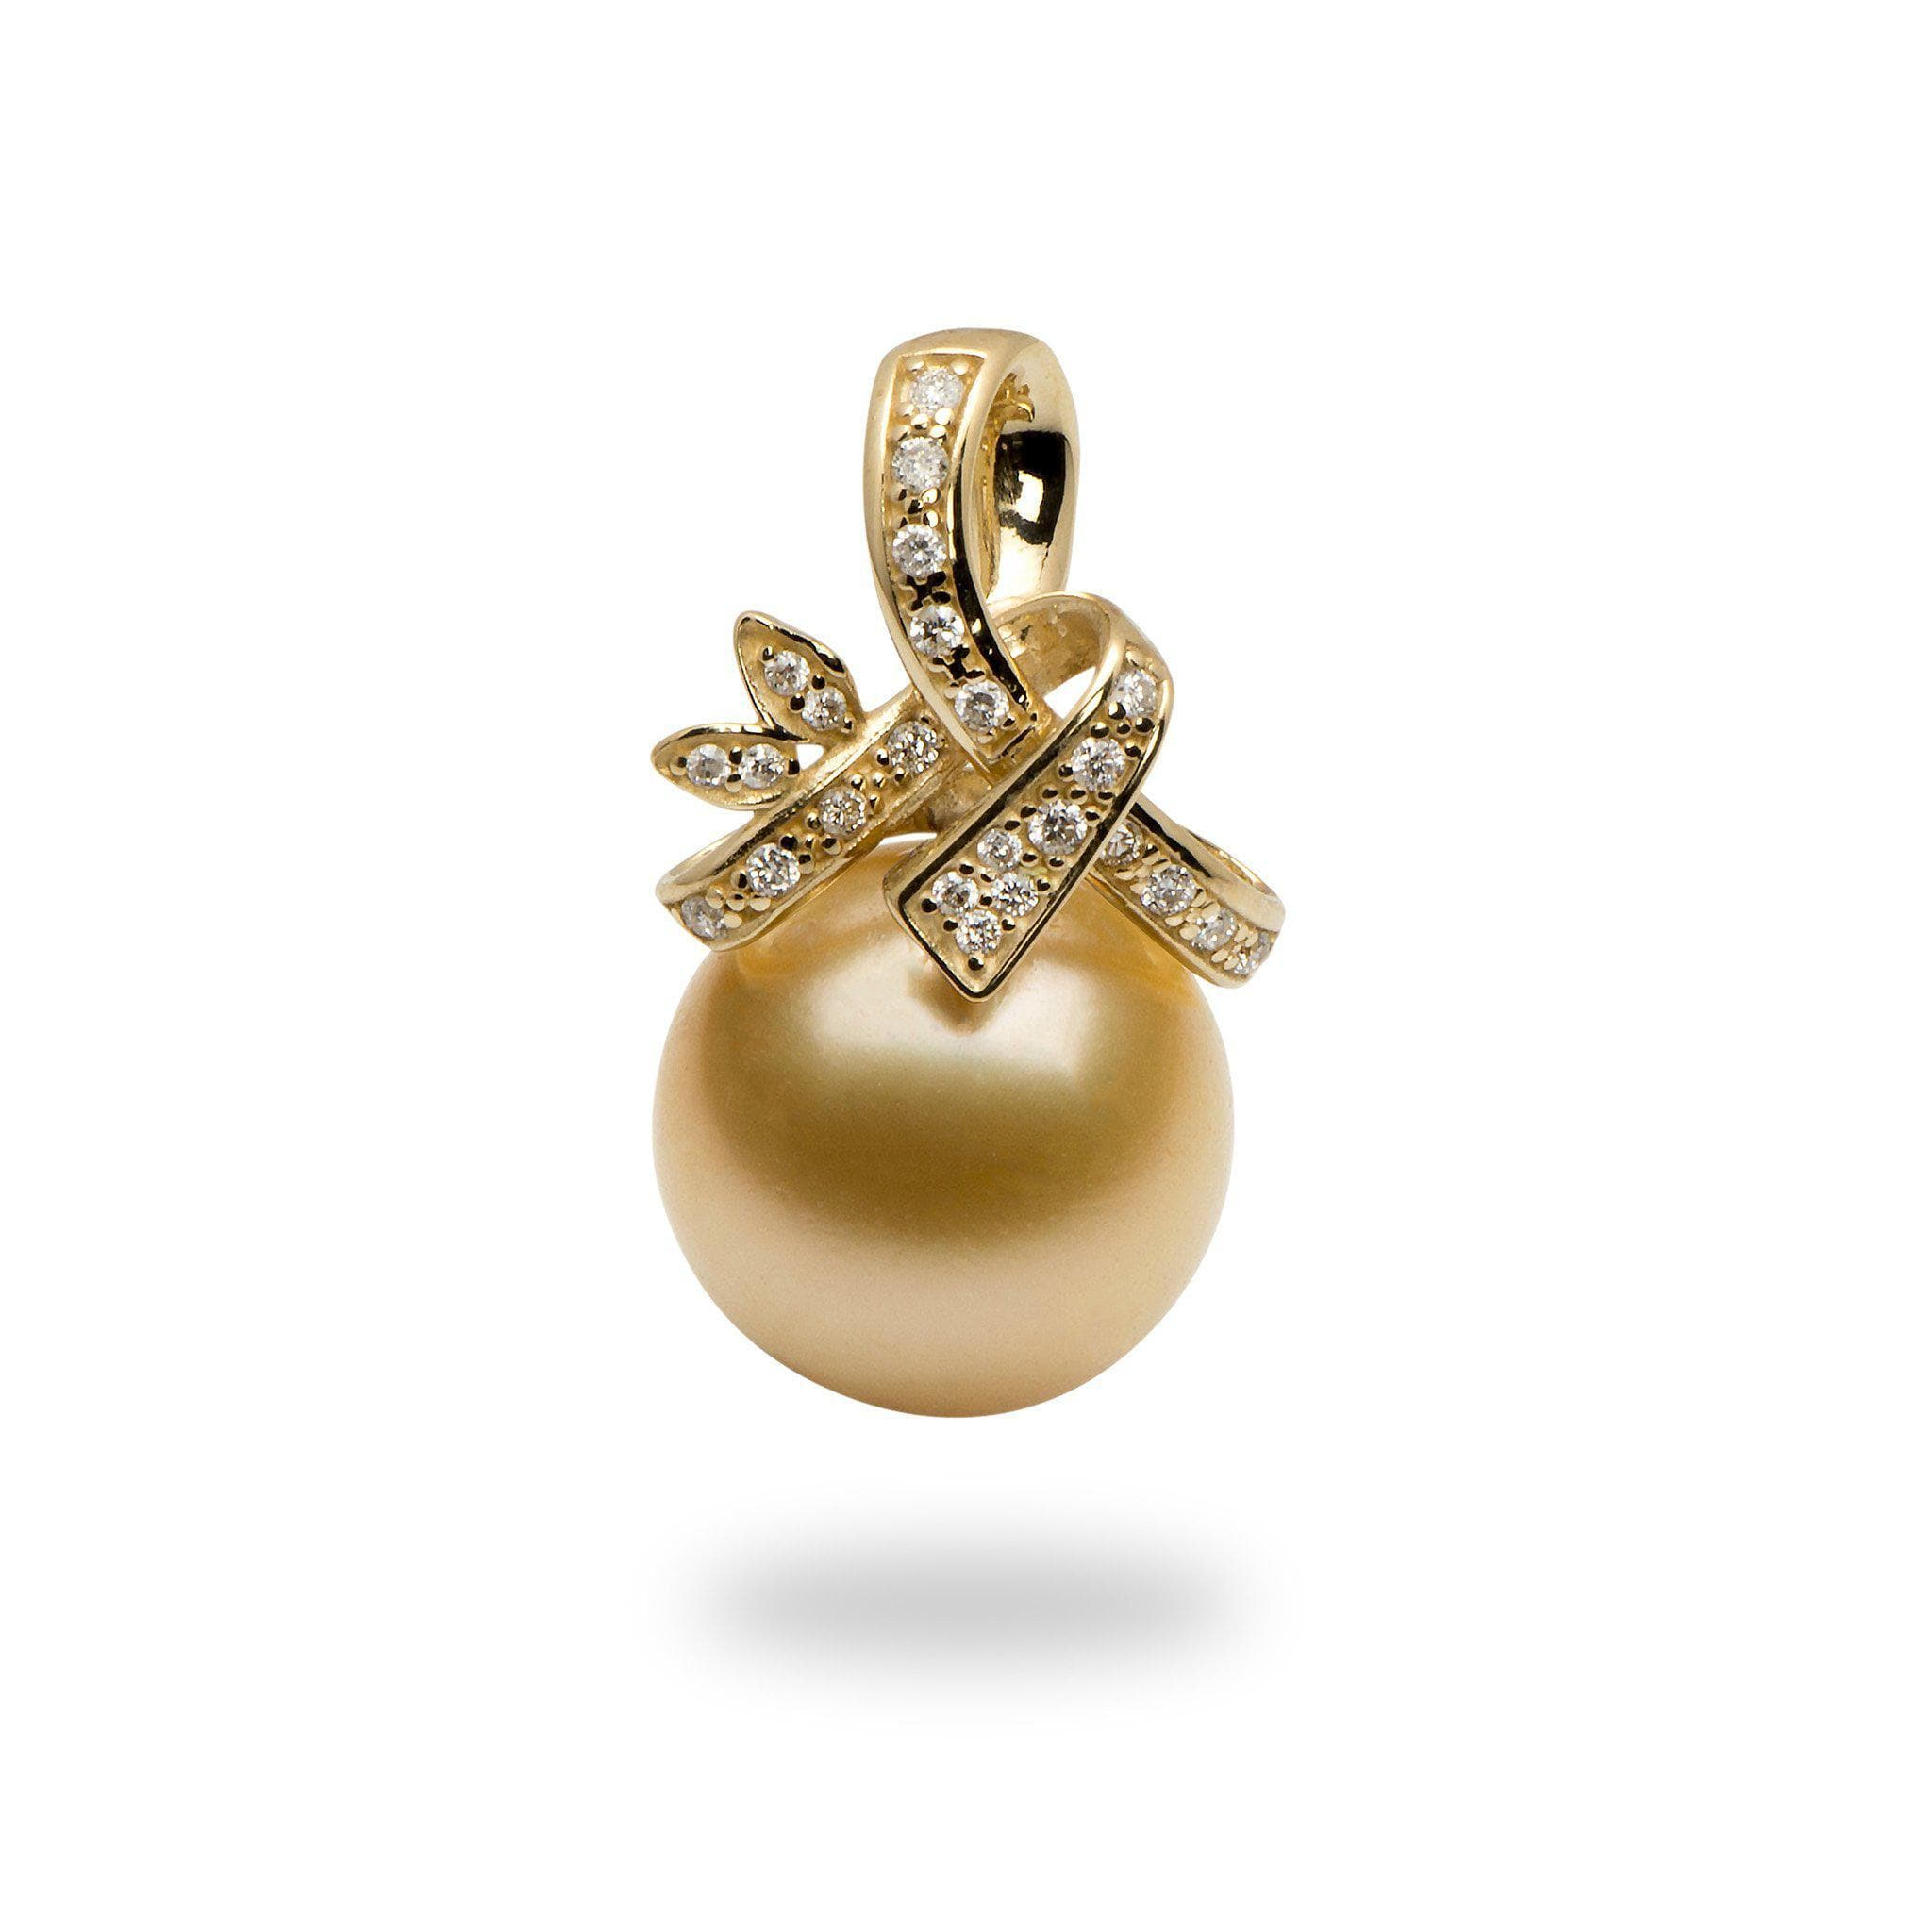 c55f3f5a5715d Shop South Sea Golden Pearl Jewelry Online